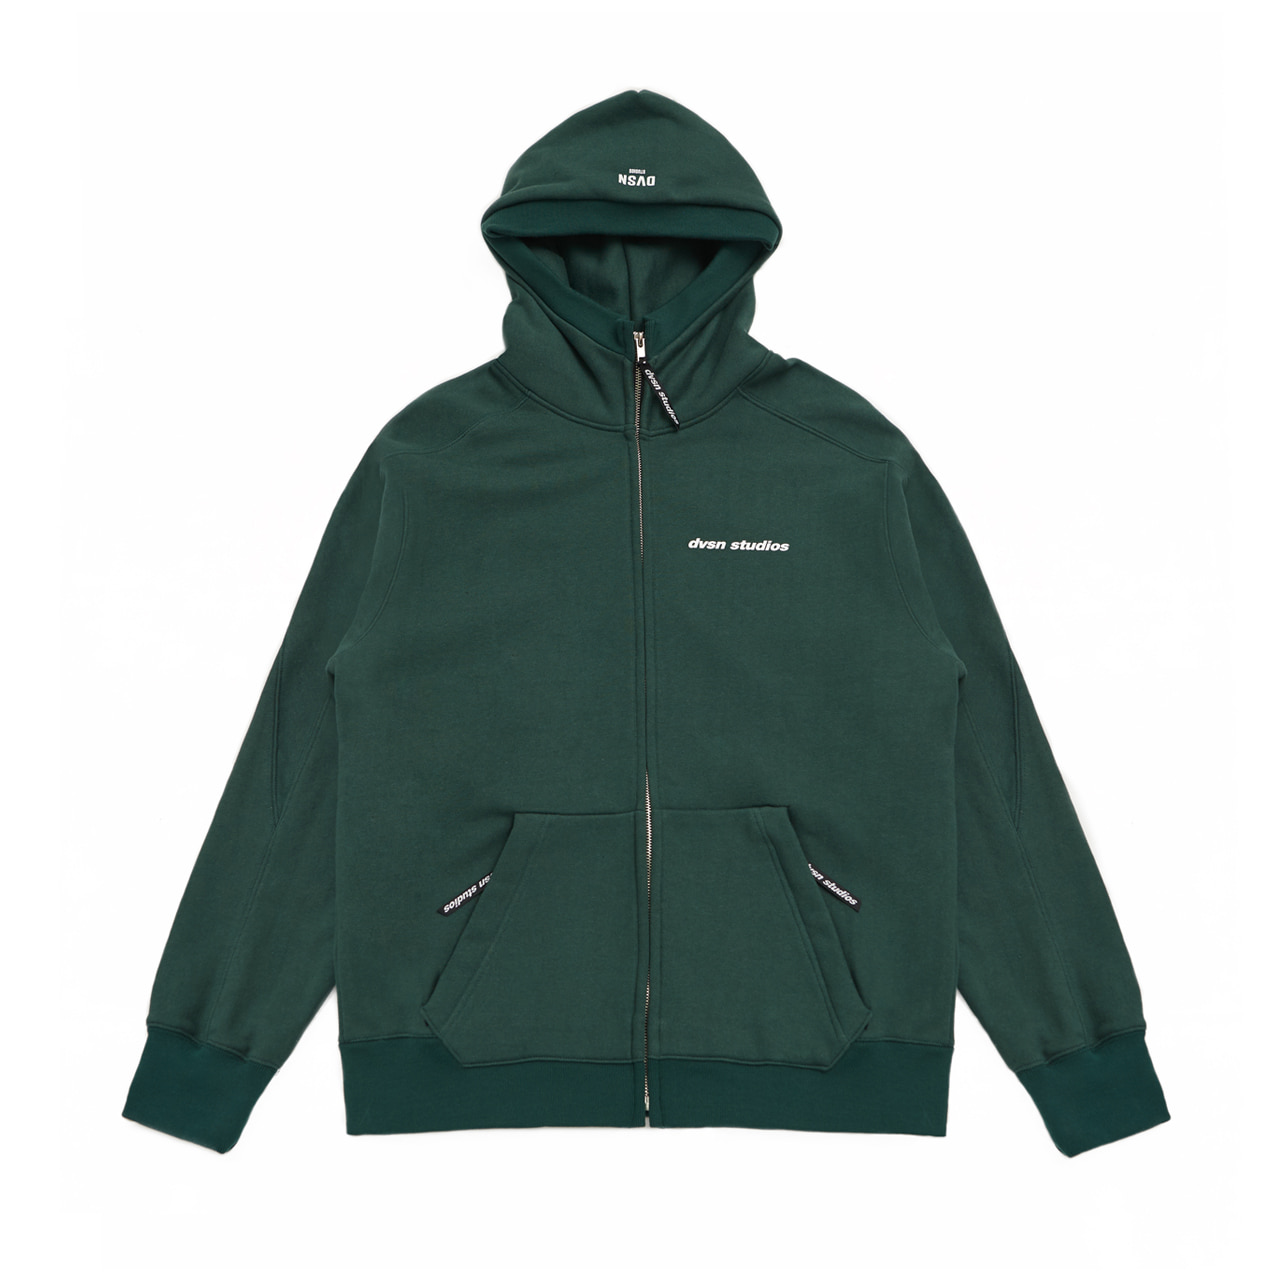 DVSN STUDIOS zip neck hood _ dark green